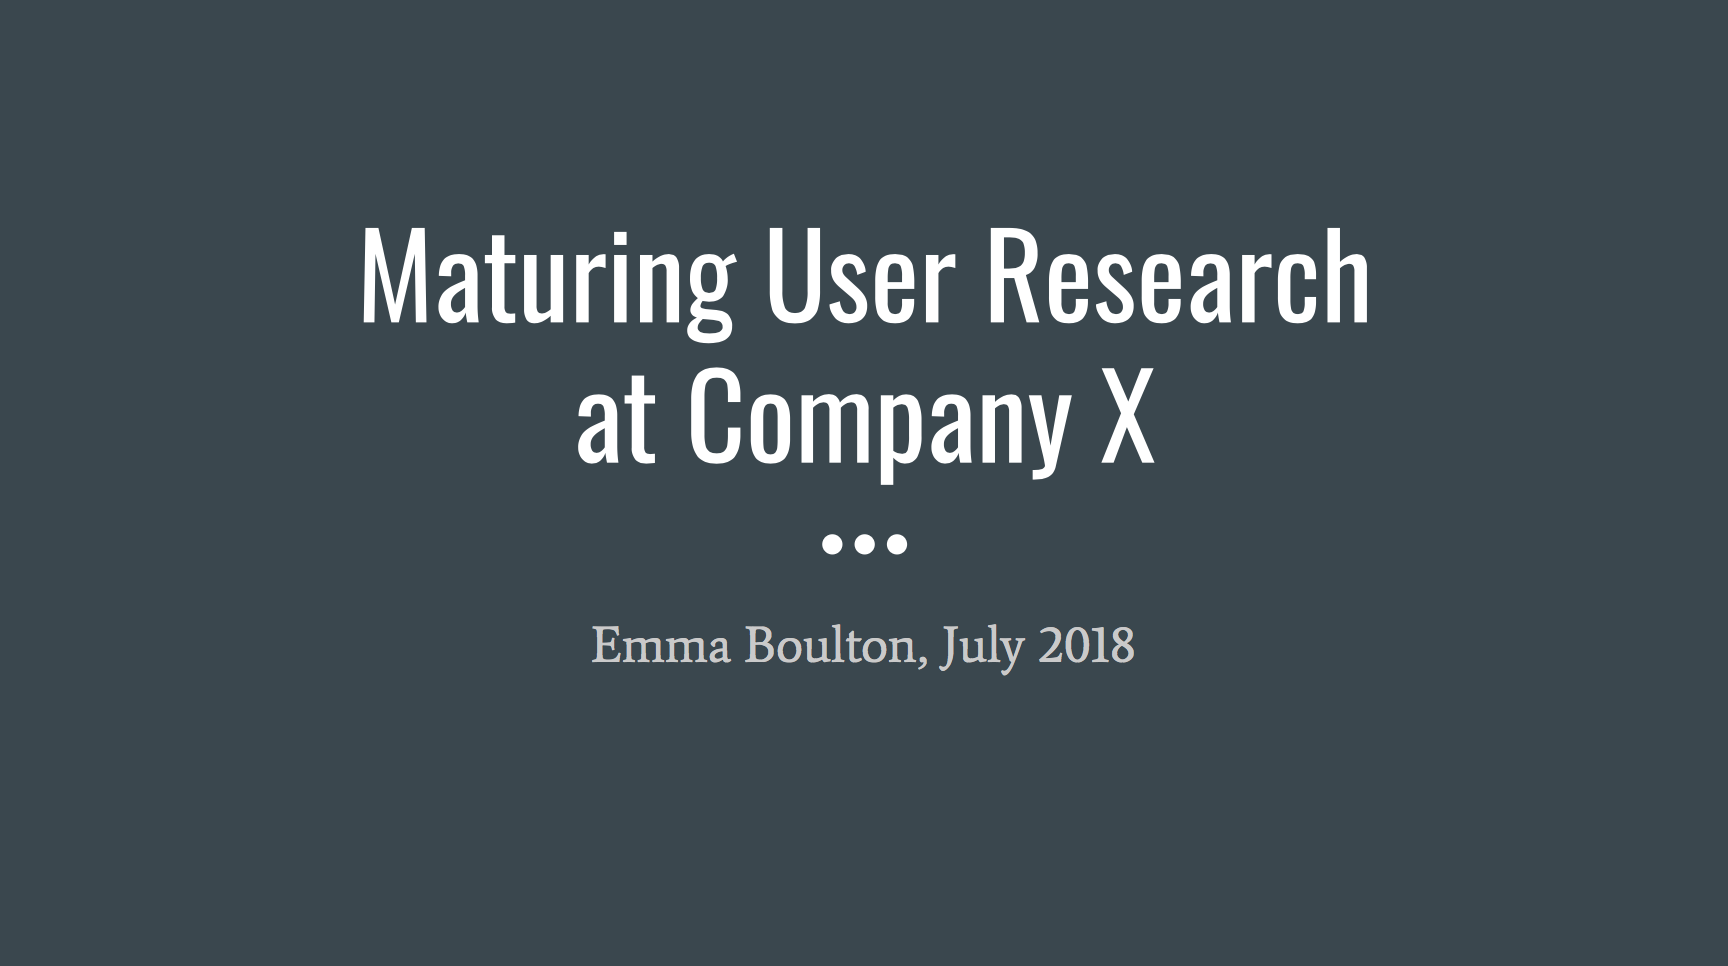 Maturing User Research